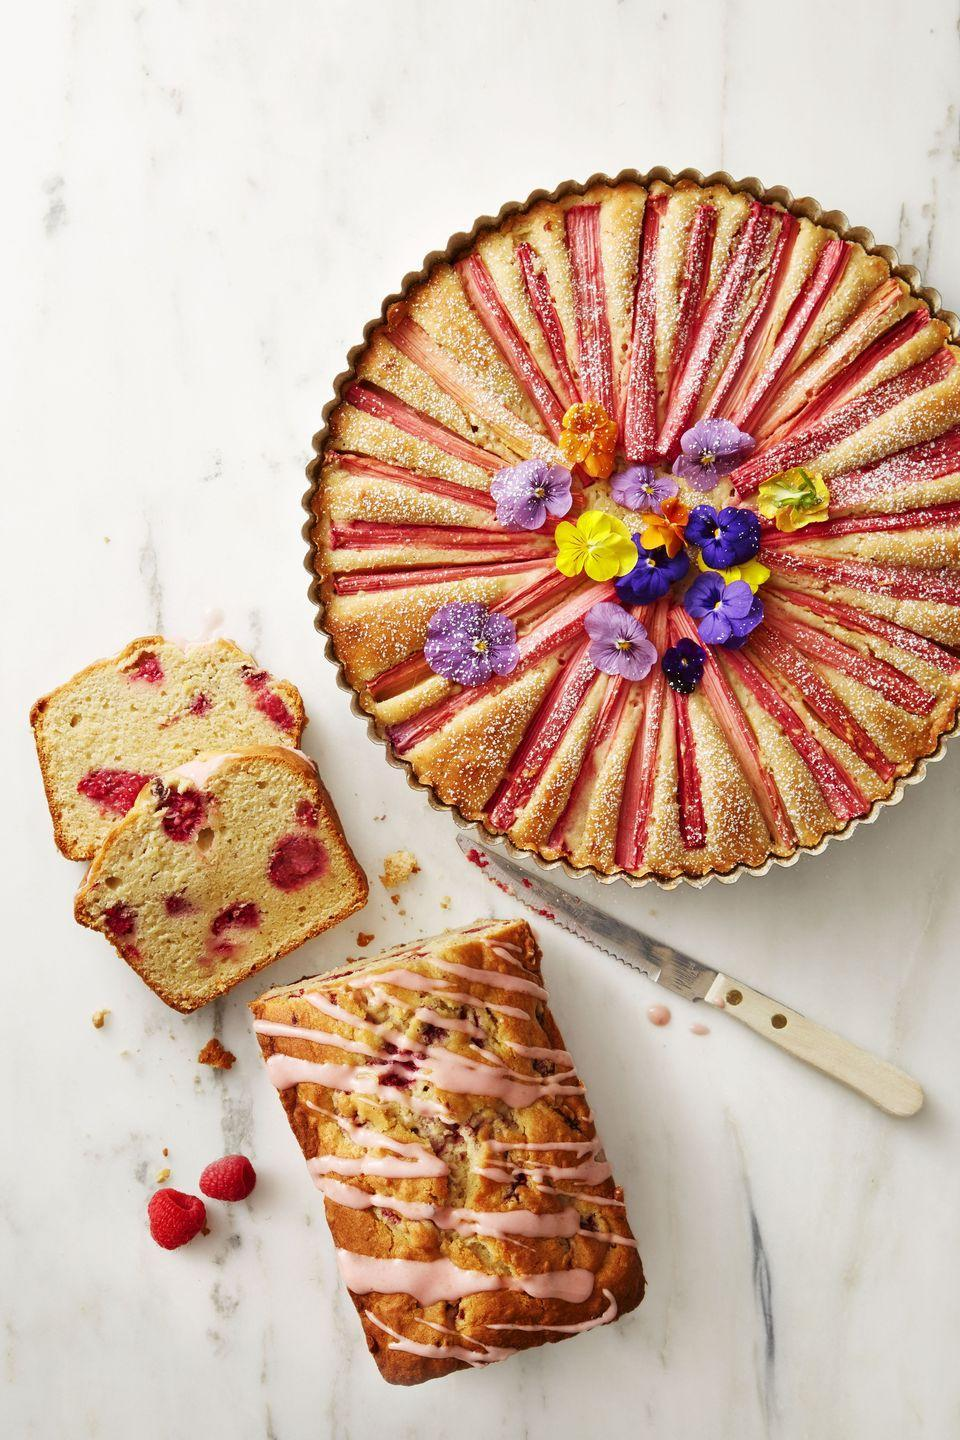 "<p>Dress up this fruity pound cake with a sugary-sweet berry glaze.</p><p><em><a href=""https://www.goodhousekeeping.com/food-recipes/dessert/a38185/raspberry-lemon-pound-cake-recipe/"" rel=""nofollow noopener"" target=""_blank"" data-ylk=""slk:Get the recipe for Raspberry Lemon Pound Cake »"" class=""link rapid-noclick-resp"">Get the recipe for Raspberry Lemon Pound Cake »</a></em></p>"